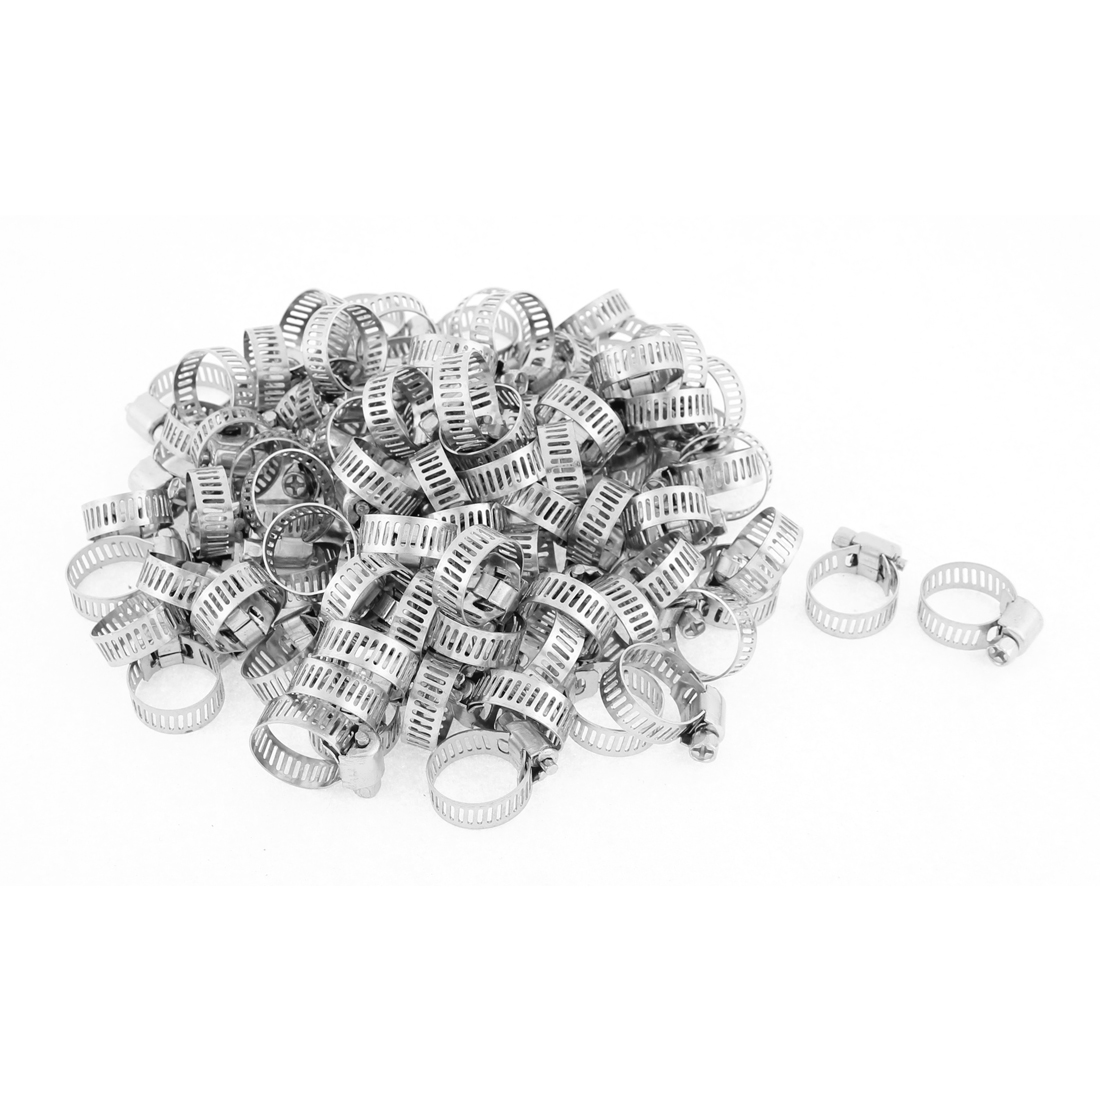 Adjustable 13-19mm Range Band Stainless Steel Worm Drive Hose Clamp 100pcs